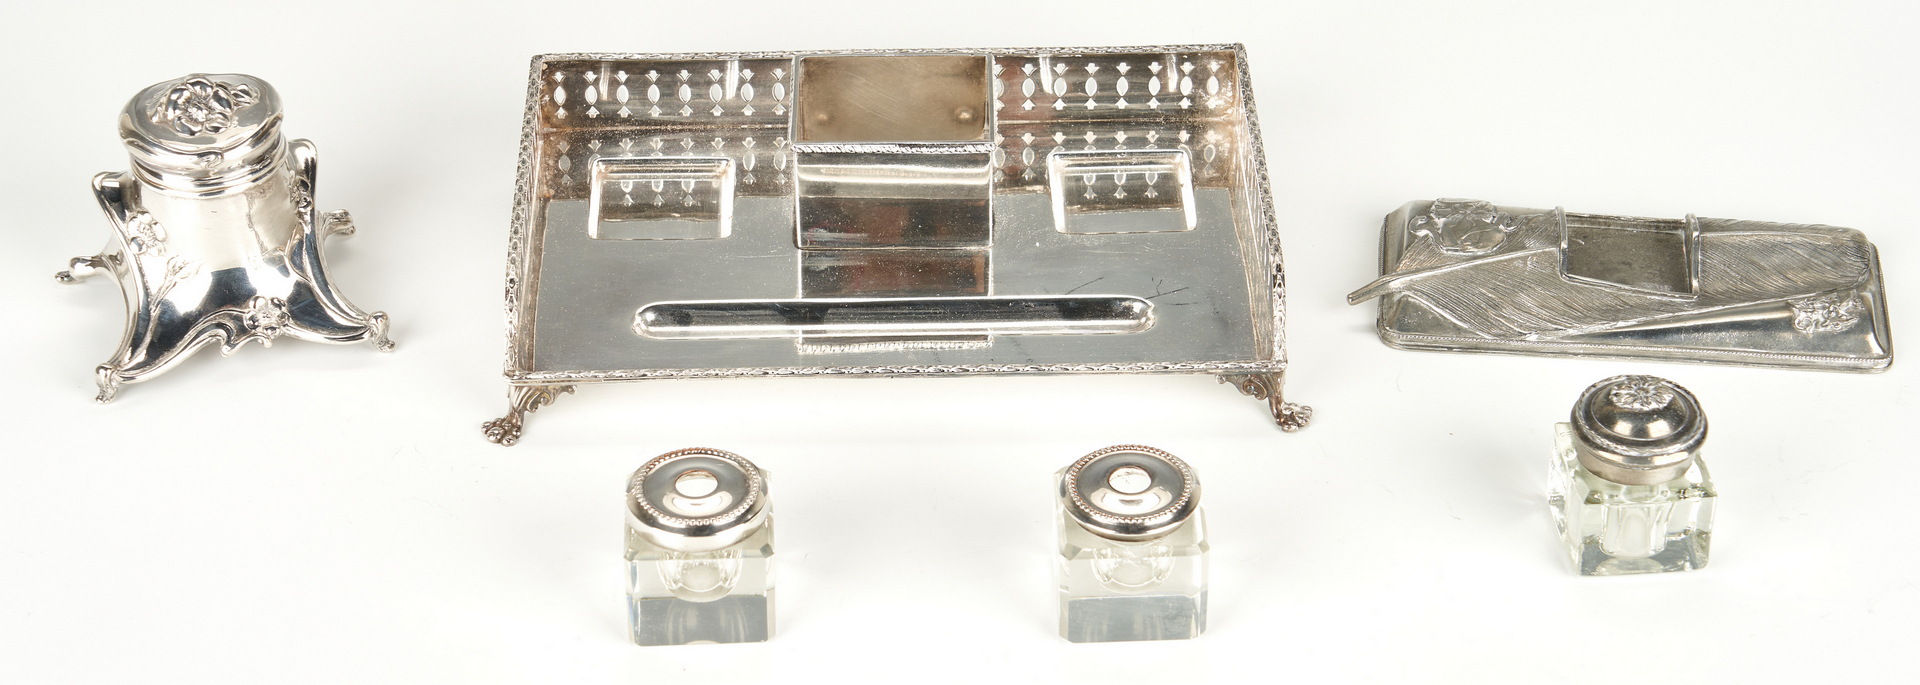 Lot 102: Group of 15 Inkwells and Ink Stands